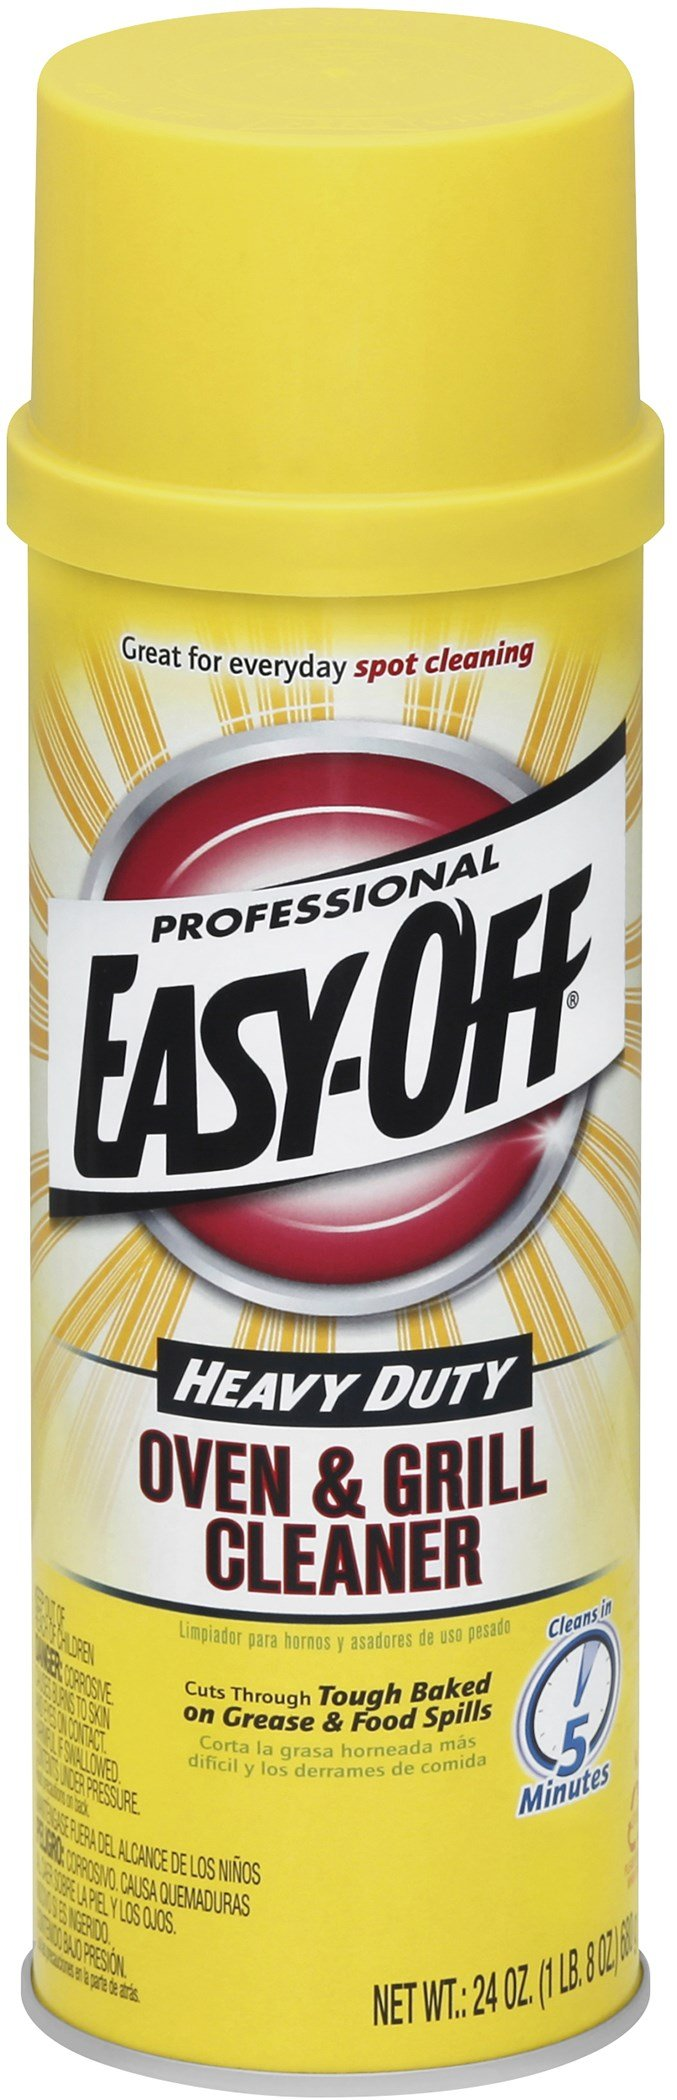 REC04250 - Oven amp; Grill Cleaner, Liquid, 24 Oz. Aerosol Can by Professional EASY-OFF® (Image #1)